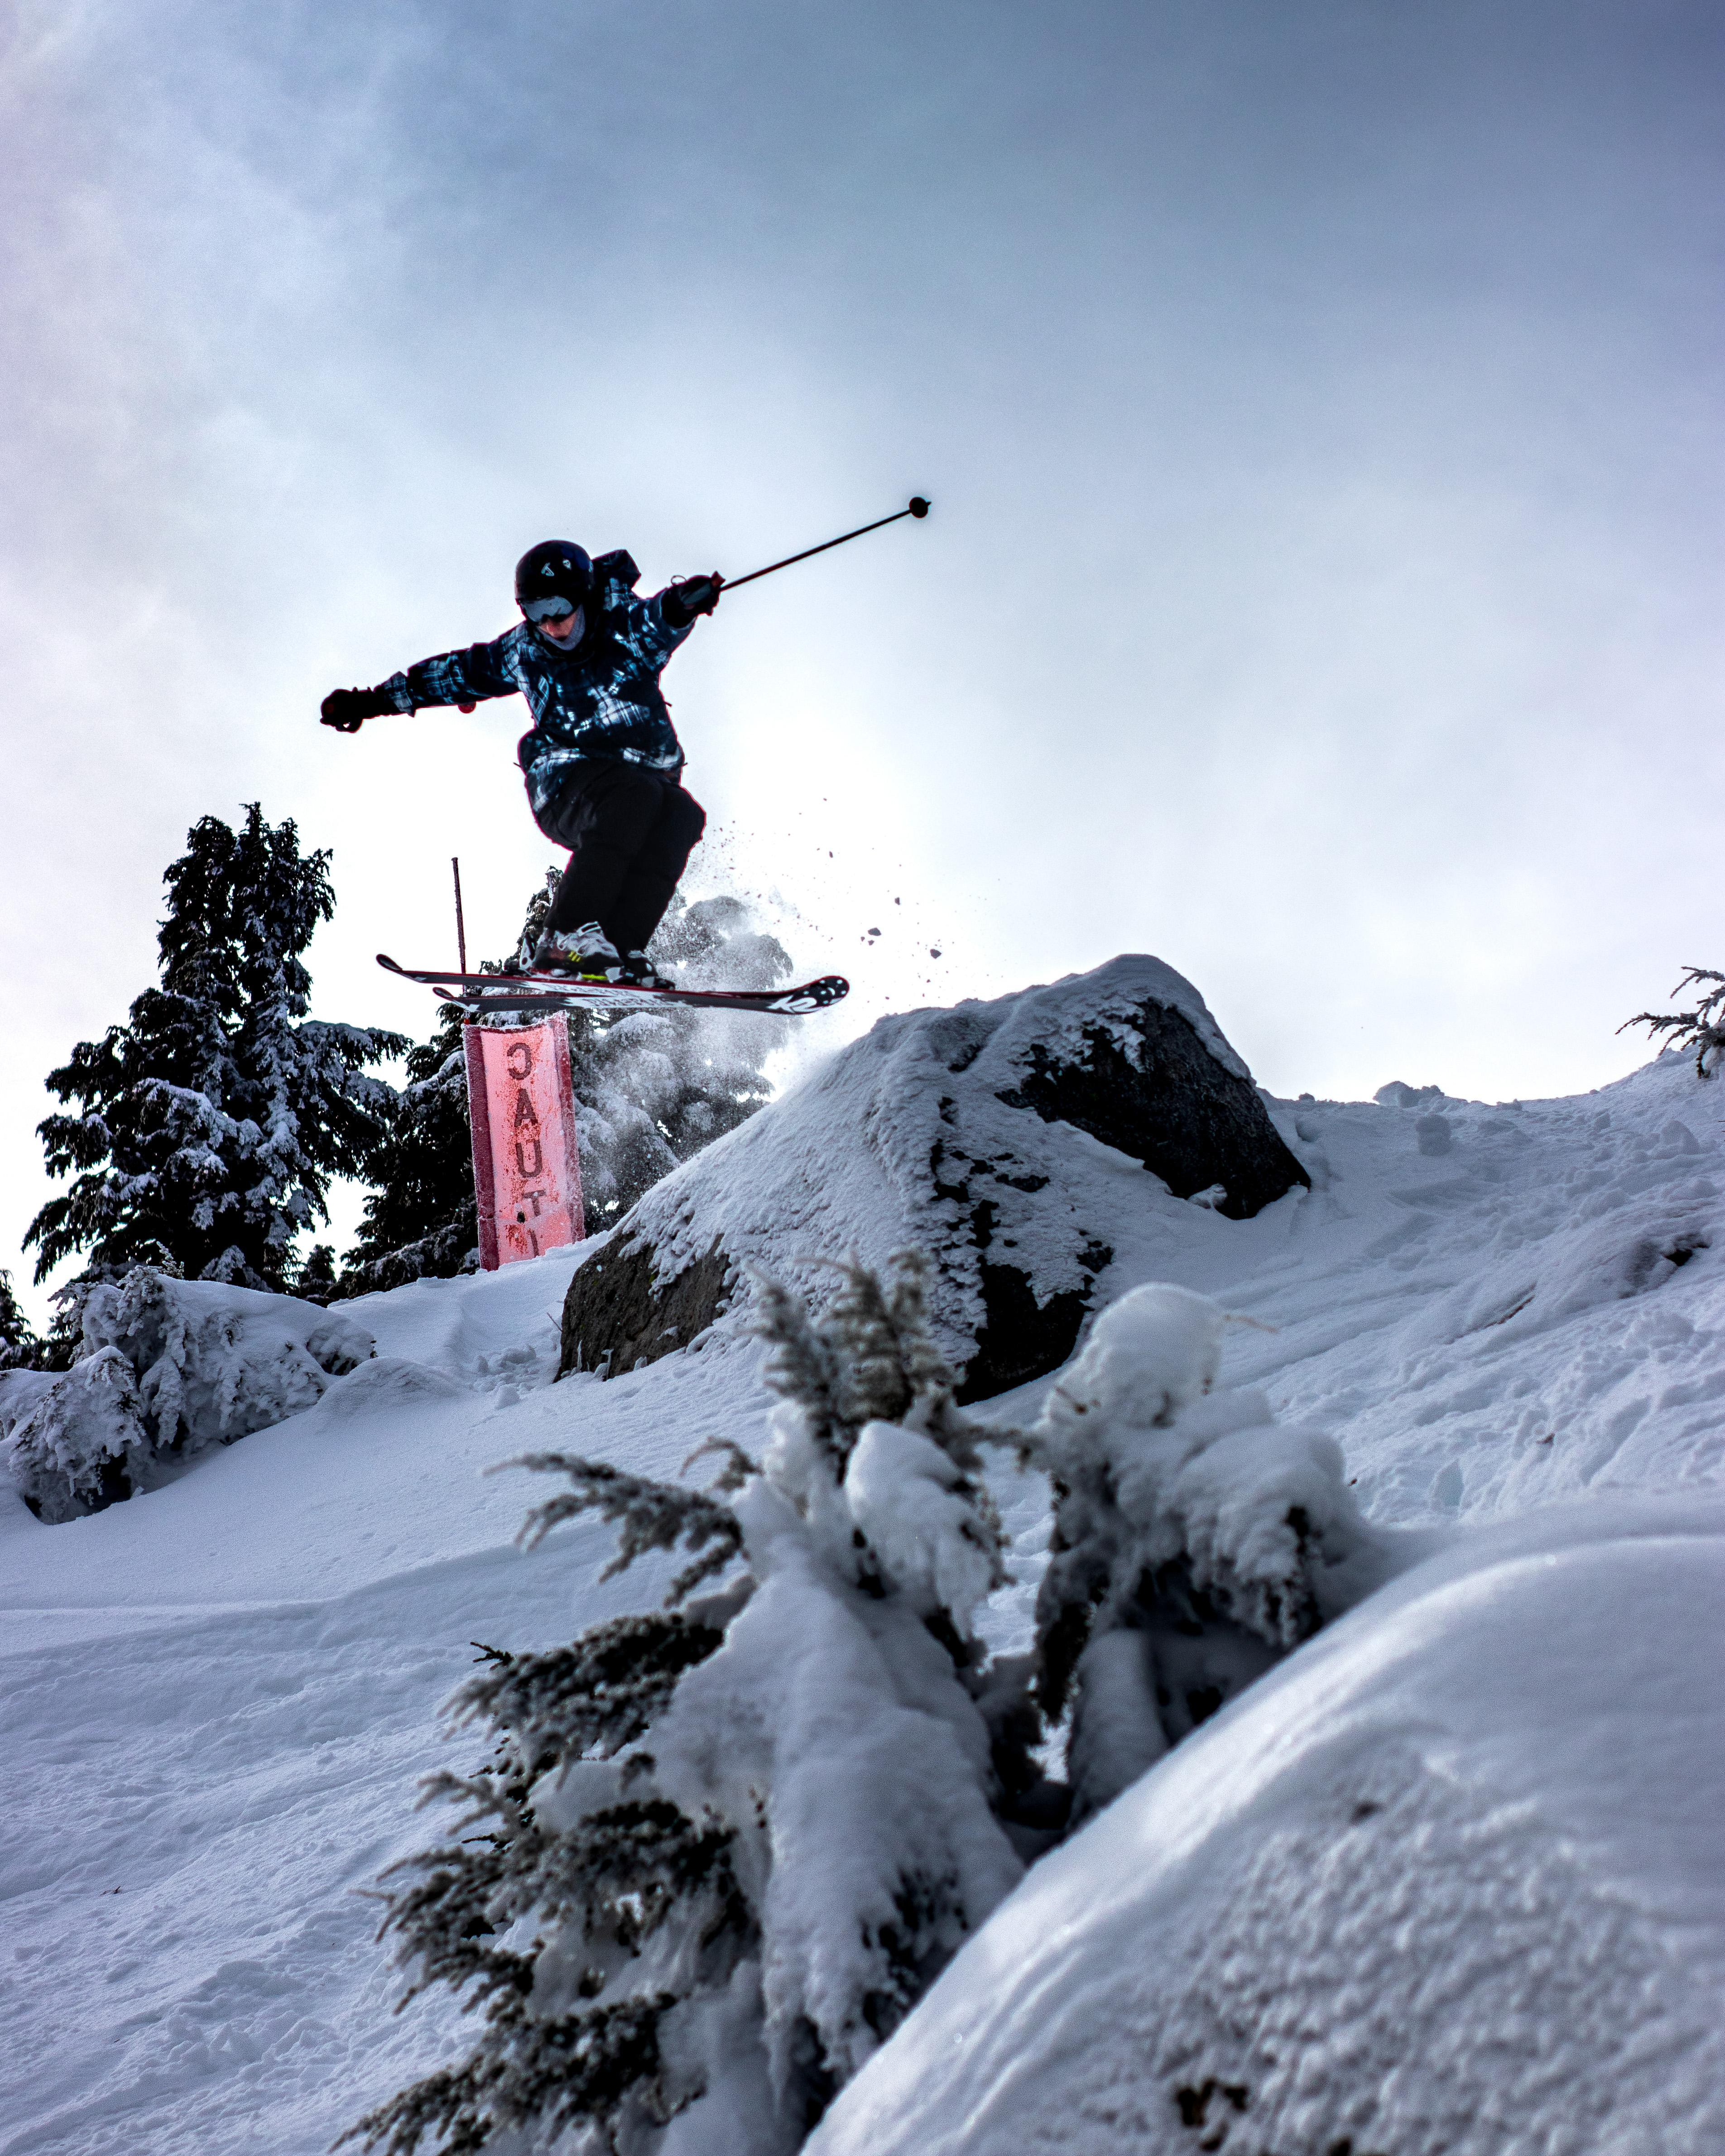 Rio Giancarlo, 16, took this photo of his friend Max Reade on Sunday Dec. 9 at Mt. Ashland Ski Area. Find more of Rio's photos on Instagram at @riogiancarlo.